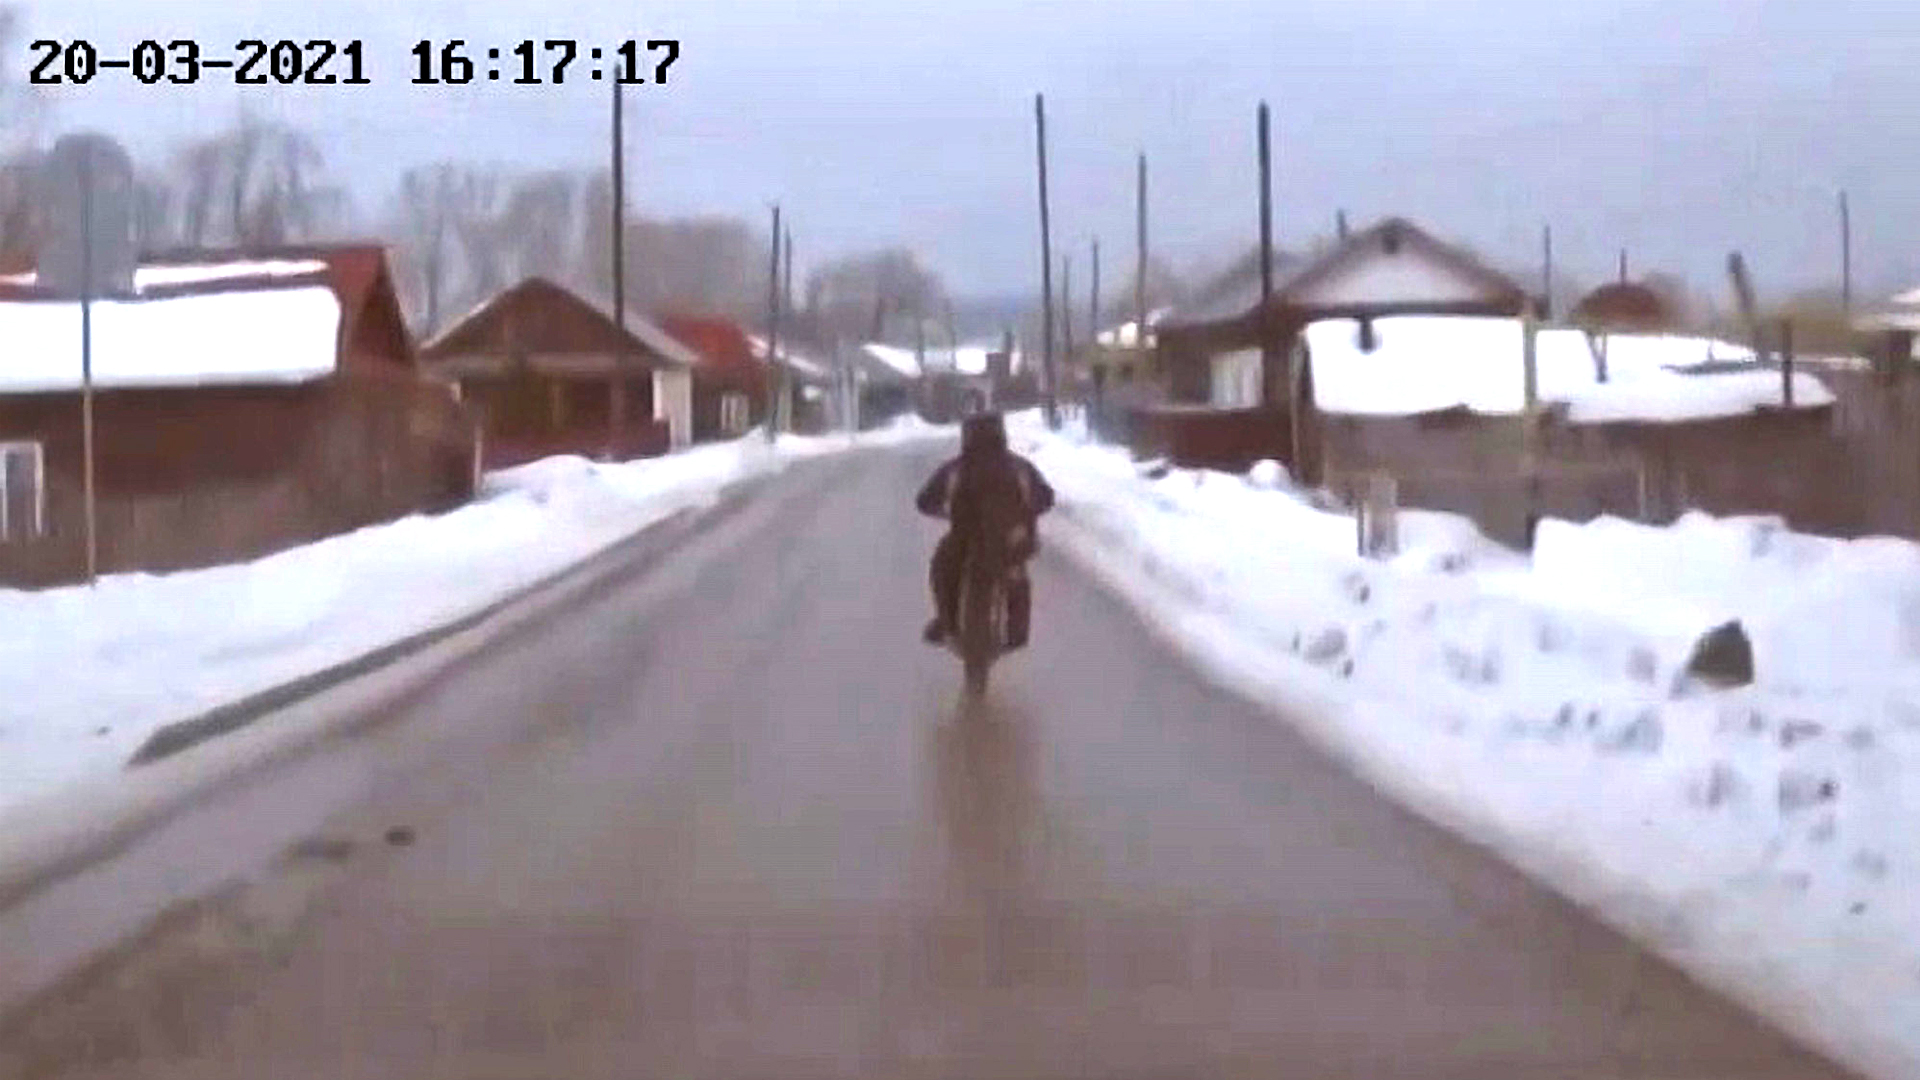 VIDEO: Freezy Rider: Teen Biker Seized After Police Chase Crash In Heavy Snow